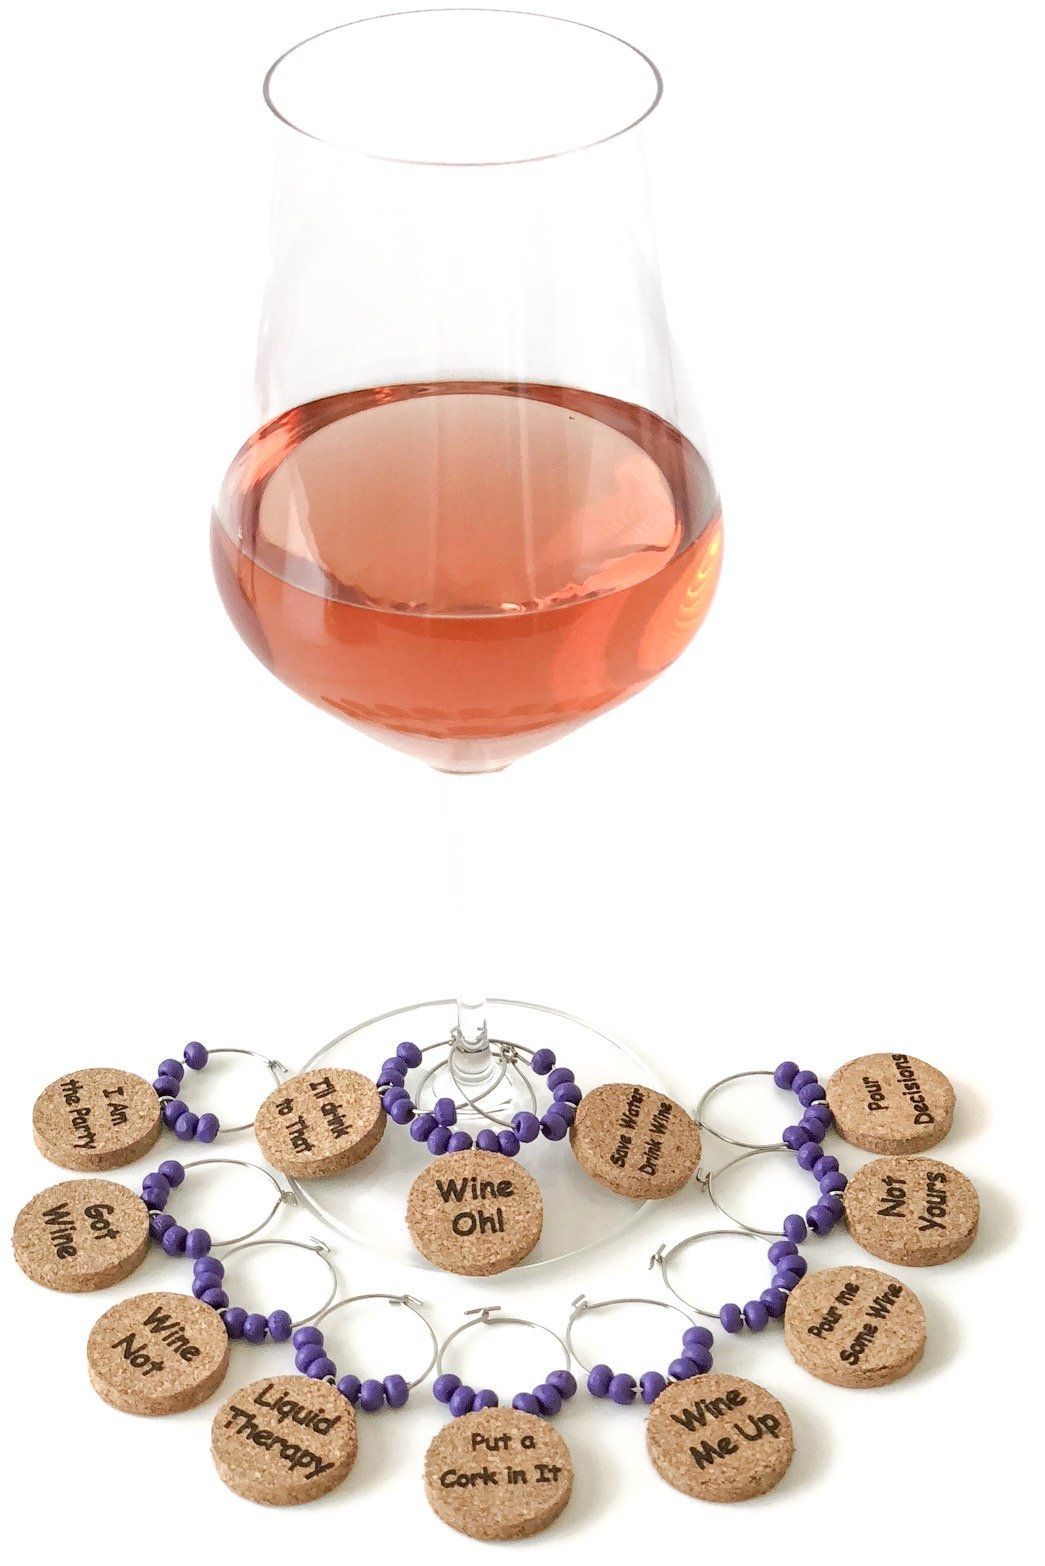 Natural Cork Wine Charms/Wine Glass Markers with Humorous Phrases. Set of 12 Eco-Friendly Drink Charms Made of Cork with Wood Beads by Cork & Leaf.